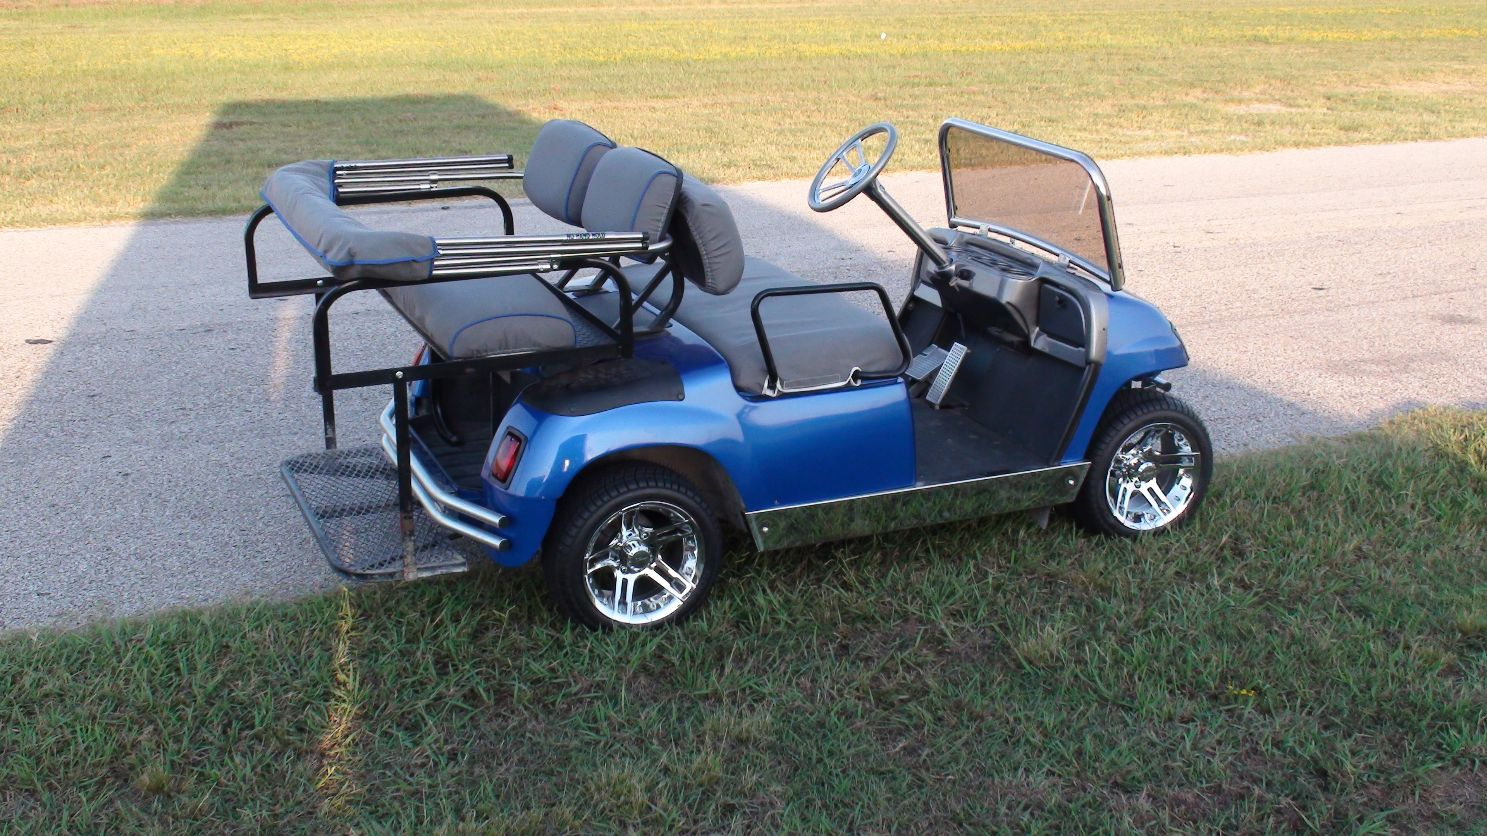 Golf Cart tops roofs canopies|soft convertible|solar Bottom Plate Diagram Ezgo Golf Cart on harley davidson golf cart diagram, golf push cart diagram, club car diagram, columbia golf cart diagram, golf club diagram, zone golf cart wiring diagram, gas golf cart wiring diagram, ezgo gas workhorse wiring-diagram, ez go txt textron diagram, 36v golf cart wiring diagram, yamaha golf cart diagram, ez go txt battery diagram, marketeer golf cart wiring diagram, ez go electrical diagram, go kart diagram,